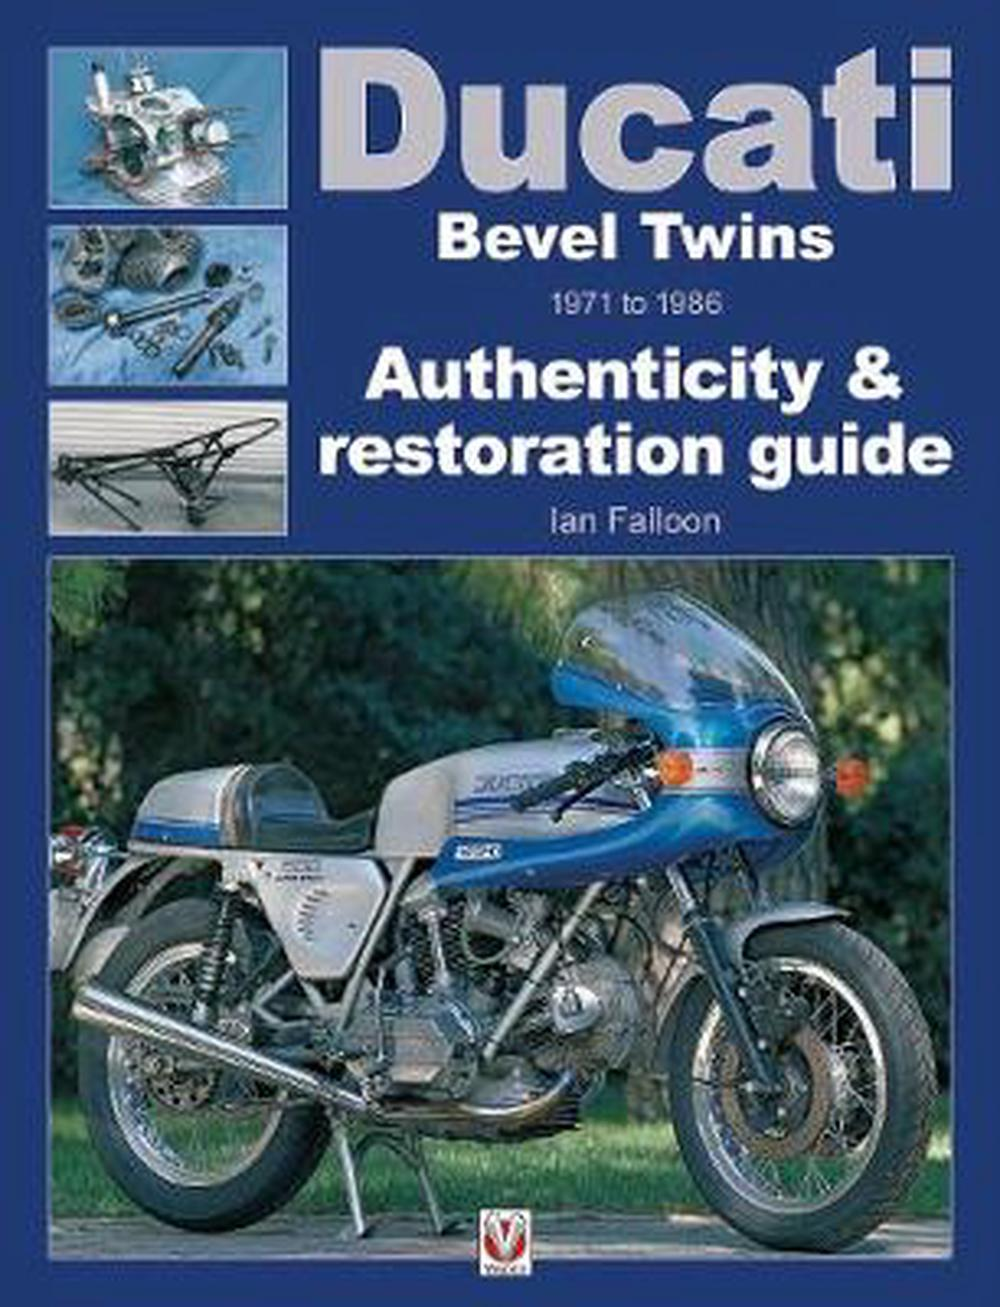 hight resolution of ducati bevel twins 1971 to 1986